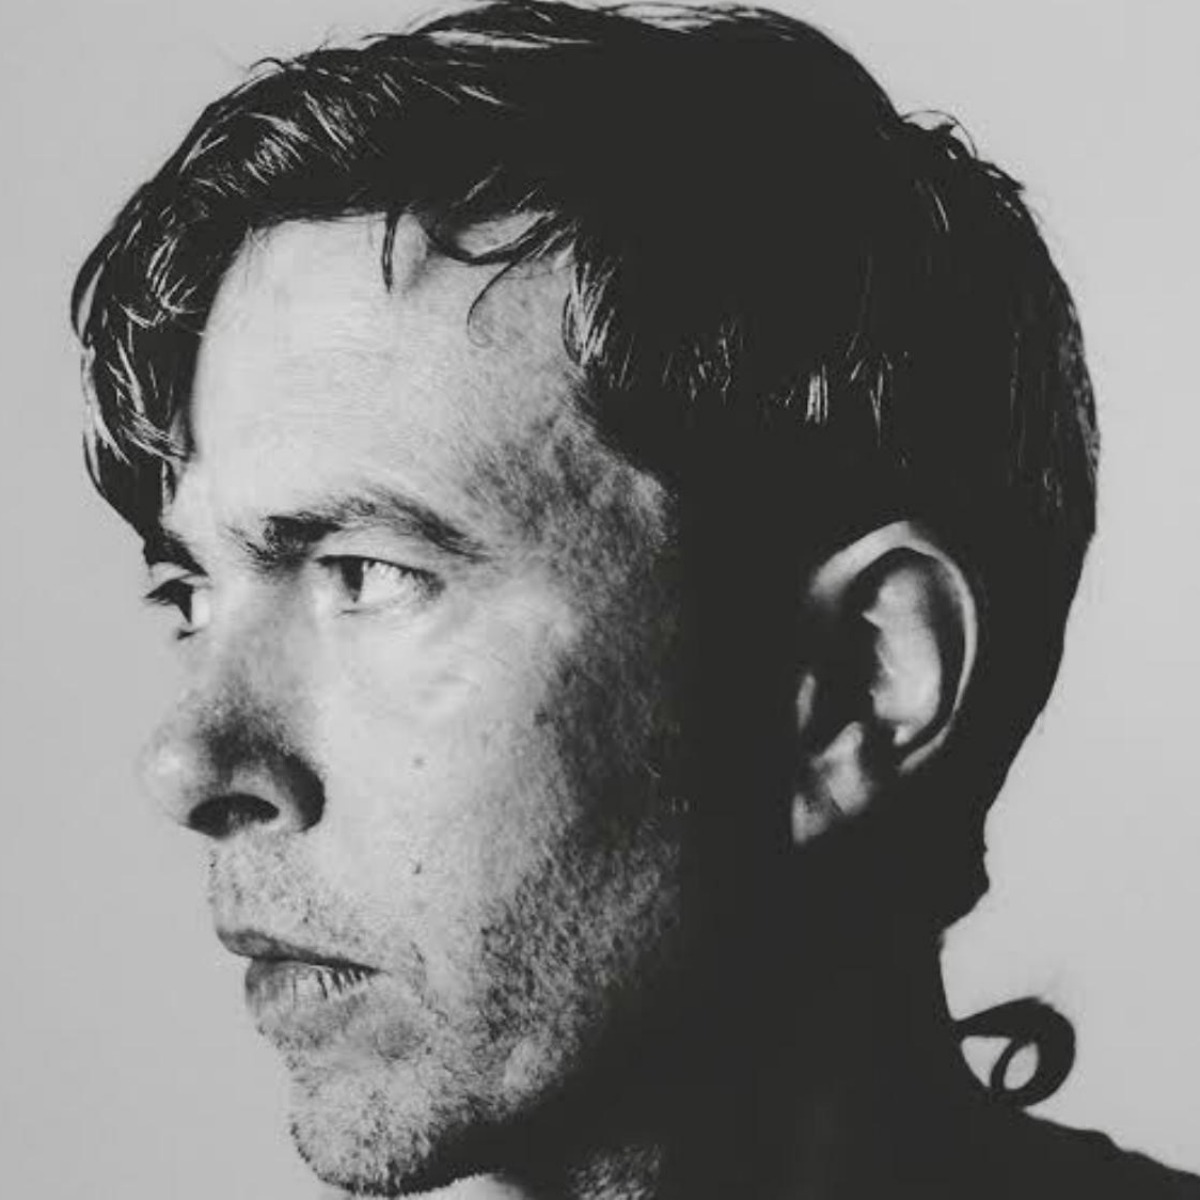 LIVE REVIEW: Bill Callahan @ Baby's All Right